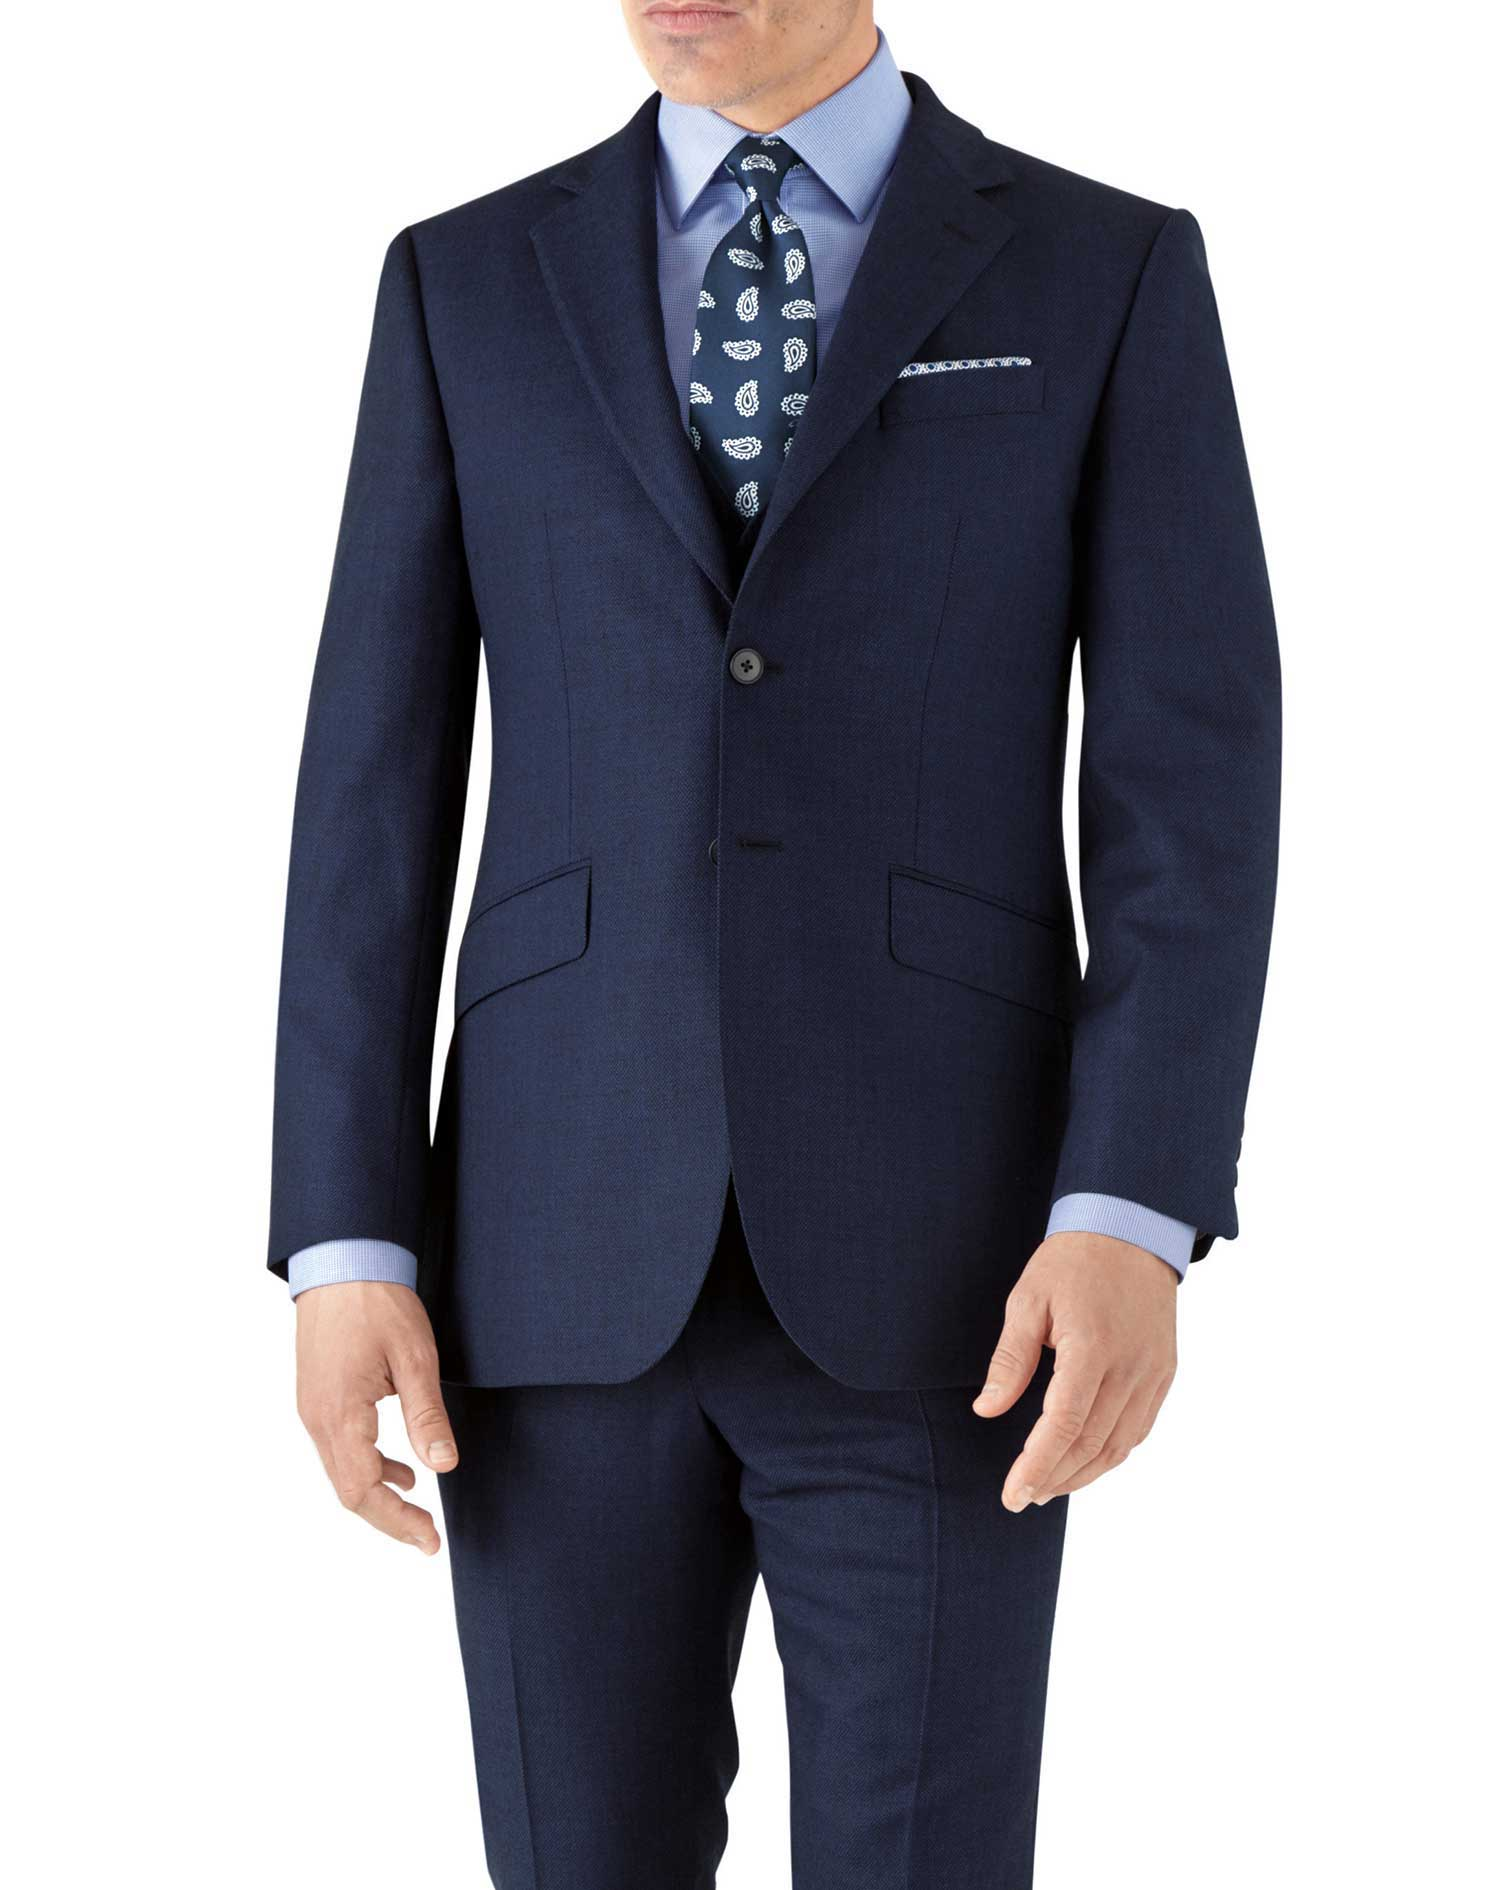 Royal Blue Slim Fit Flannel Business Suit Wool Jacket Size 42 Long by Charles Tyrwhitt